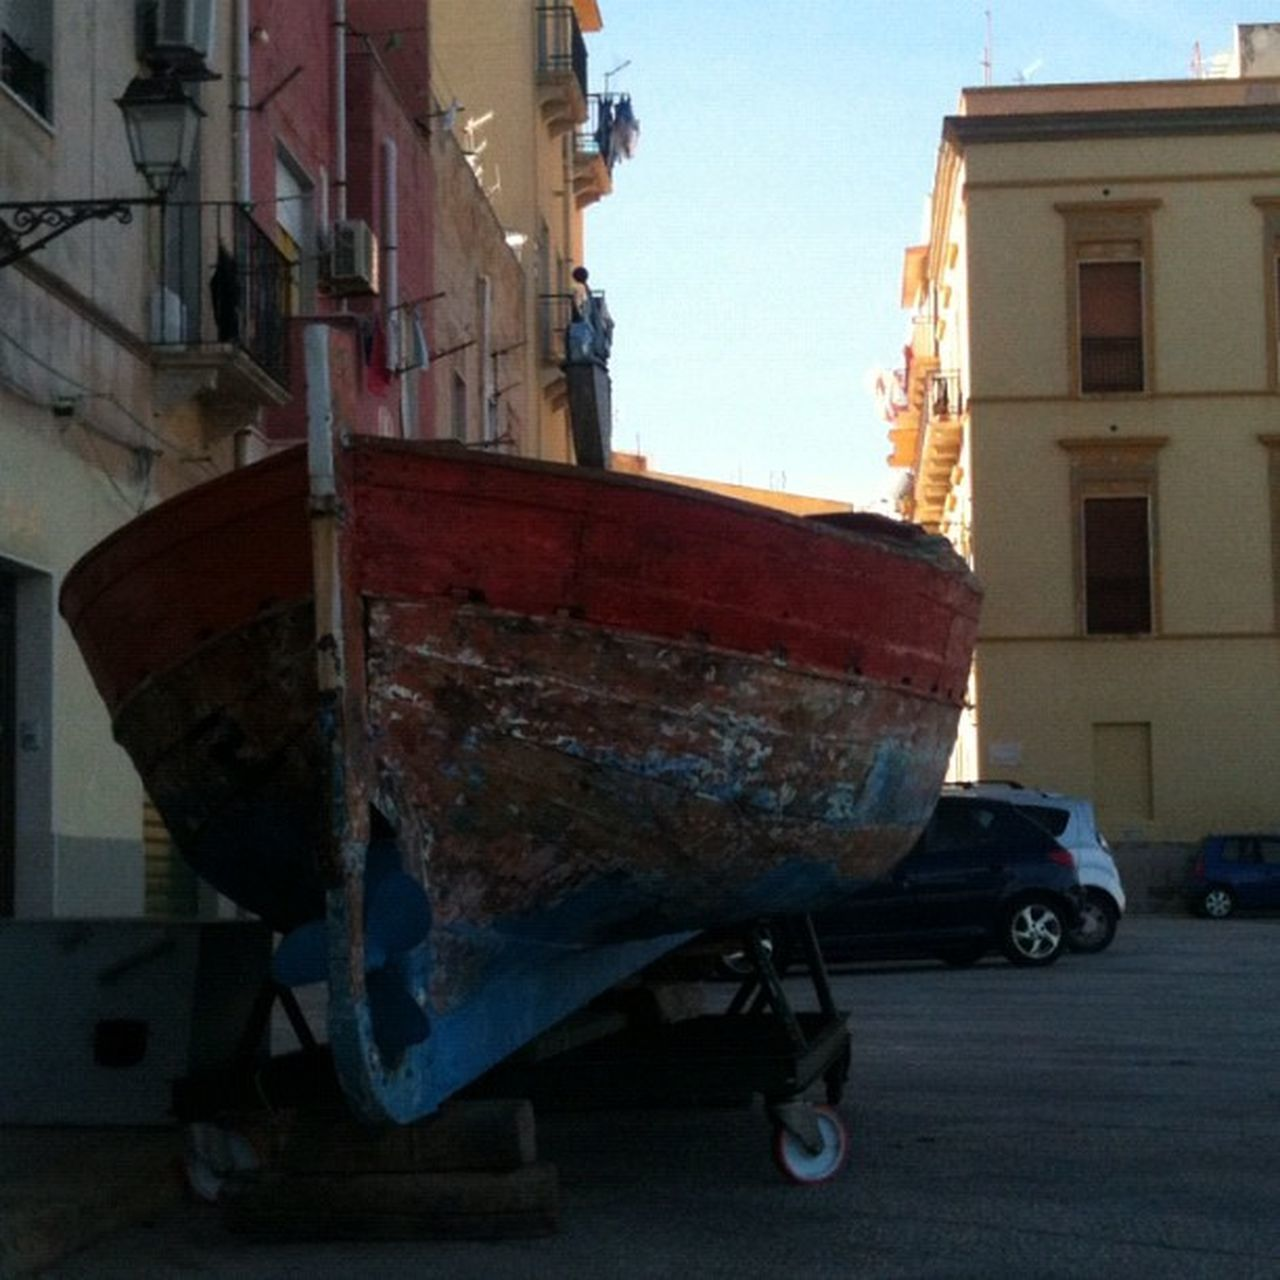 transportation, building exterior, built structure, architecture, mode of transport, outdoors, no people, nautical vessel, sky, city, day